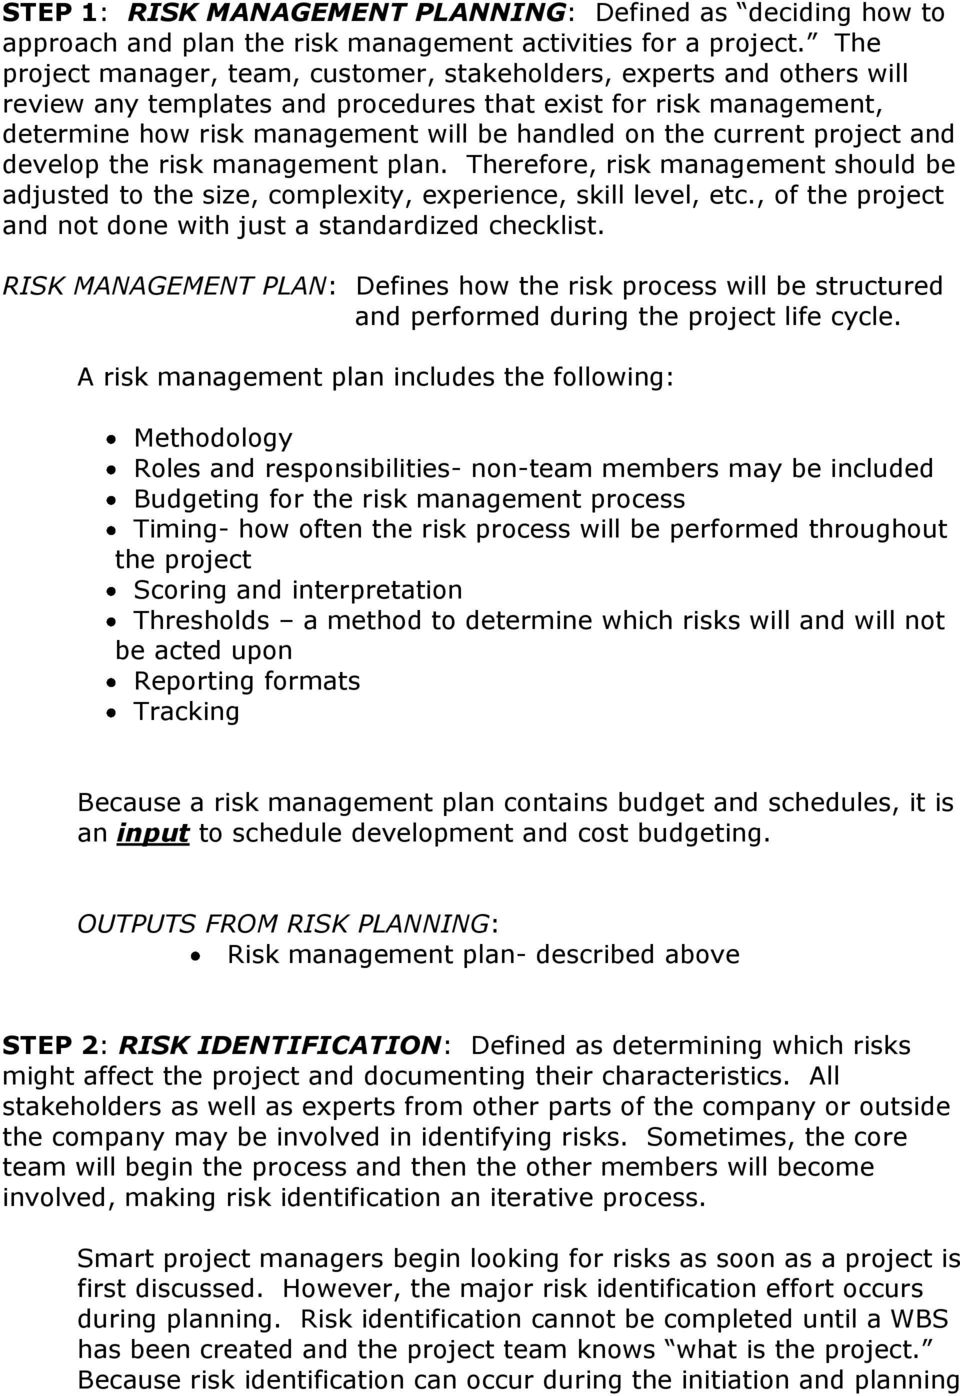 current project and develop the risk management plan. Therefore, risk management should be adjusted to the size, complexity, experience, skill level, etc.